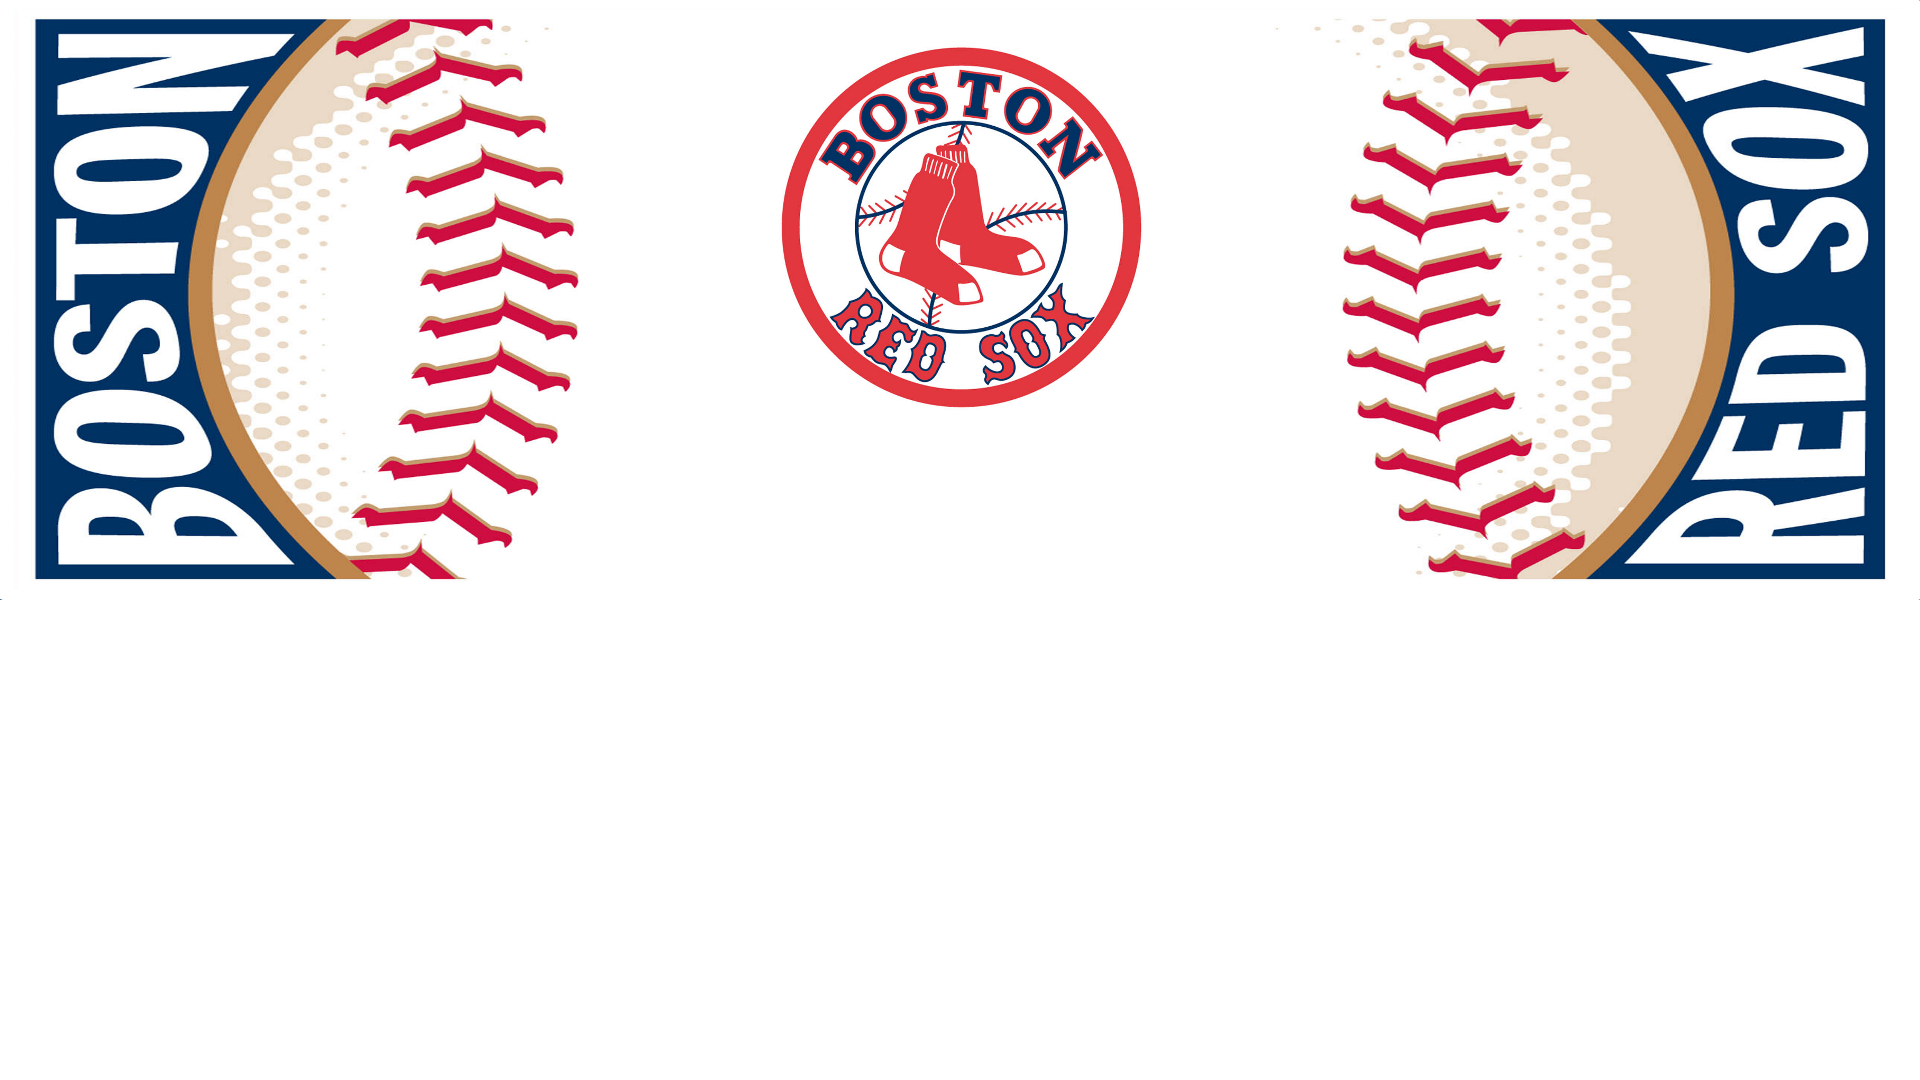 1920x1080 - Boston Red Sox Wallpaper Screensavers 48